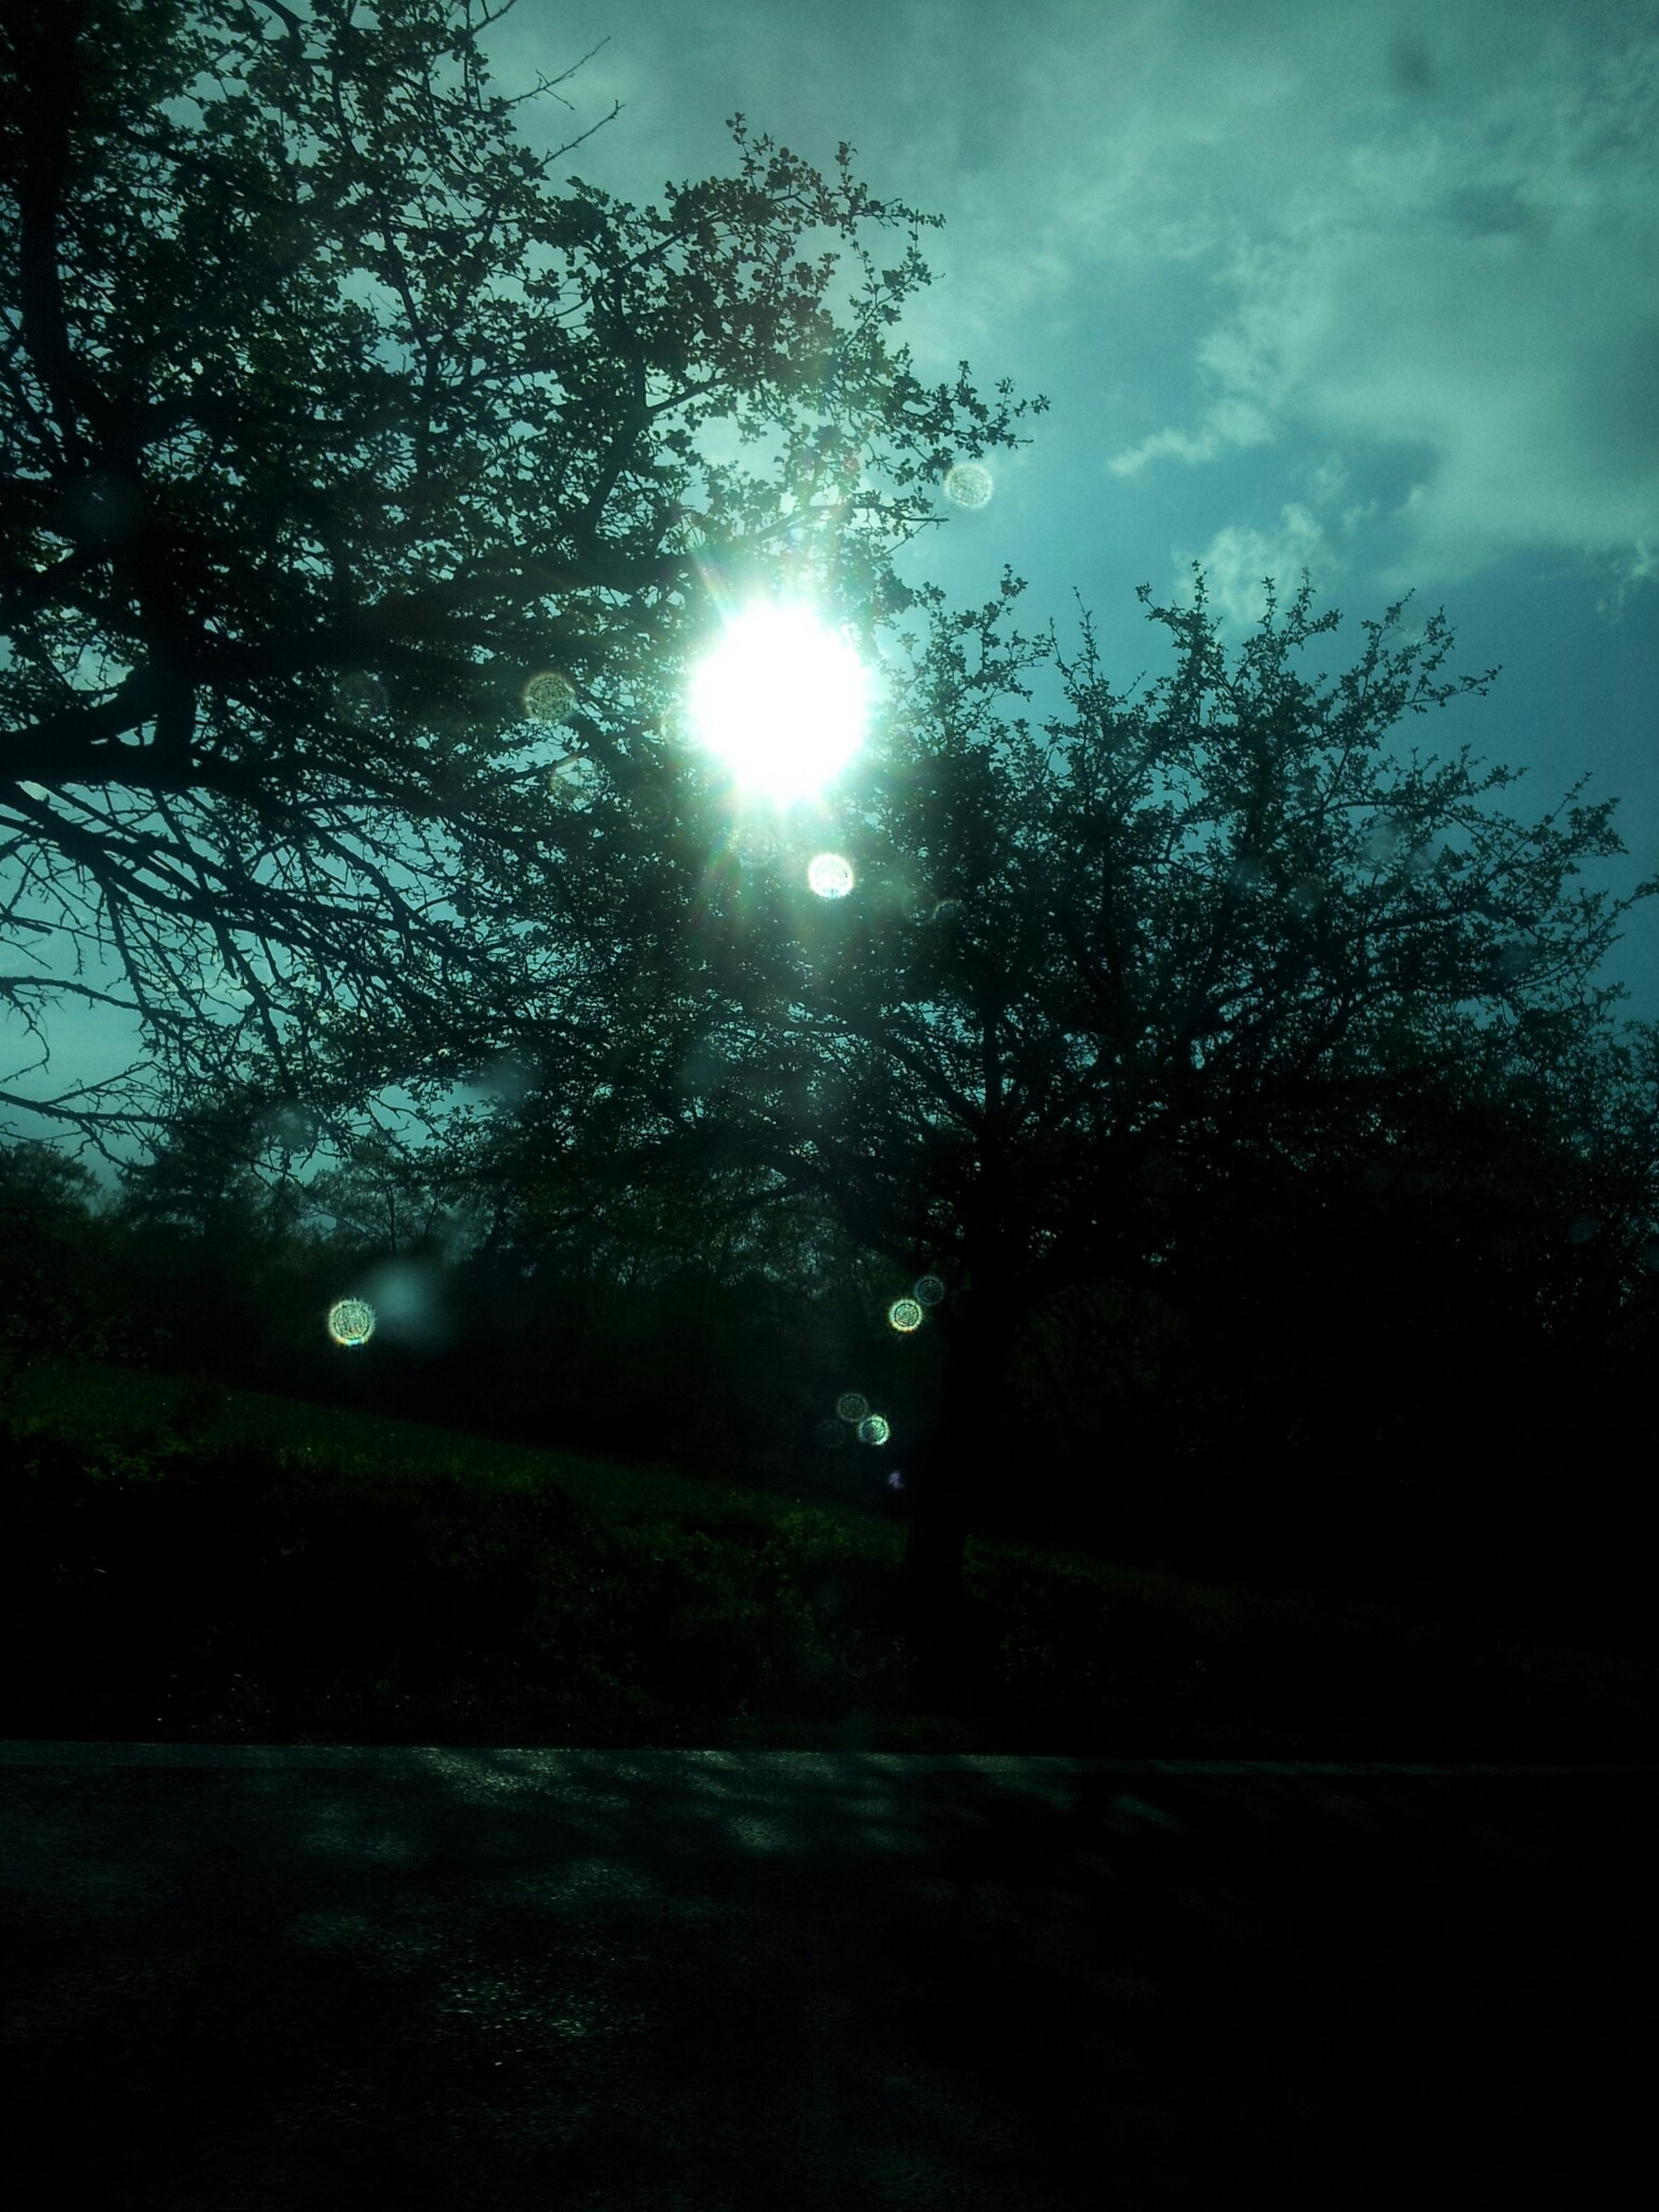 sun, tree, lens flare, sky, sunbeam, sunlight, silhouette, tranquility, nature, growth, beauty in nature, tranquil scene, bright, no people, branch, outdoors, cloud - sky, sunny, back lit, scenics